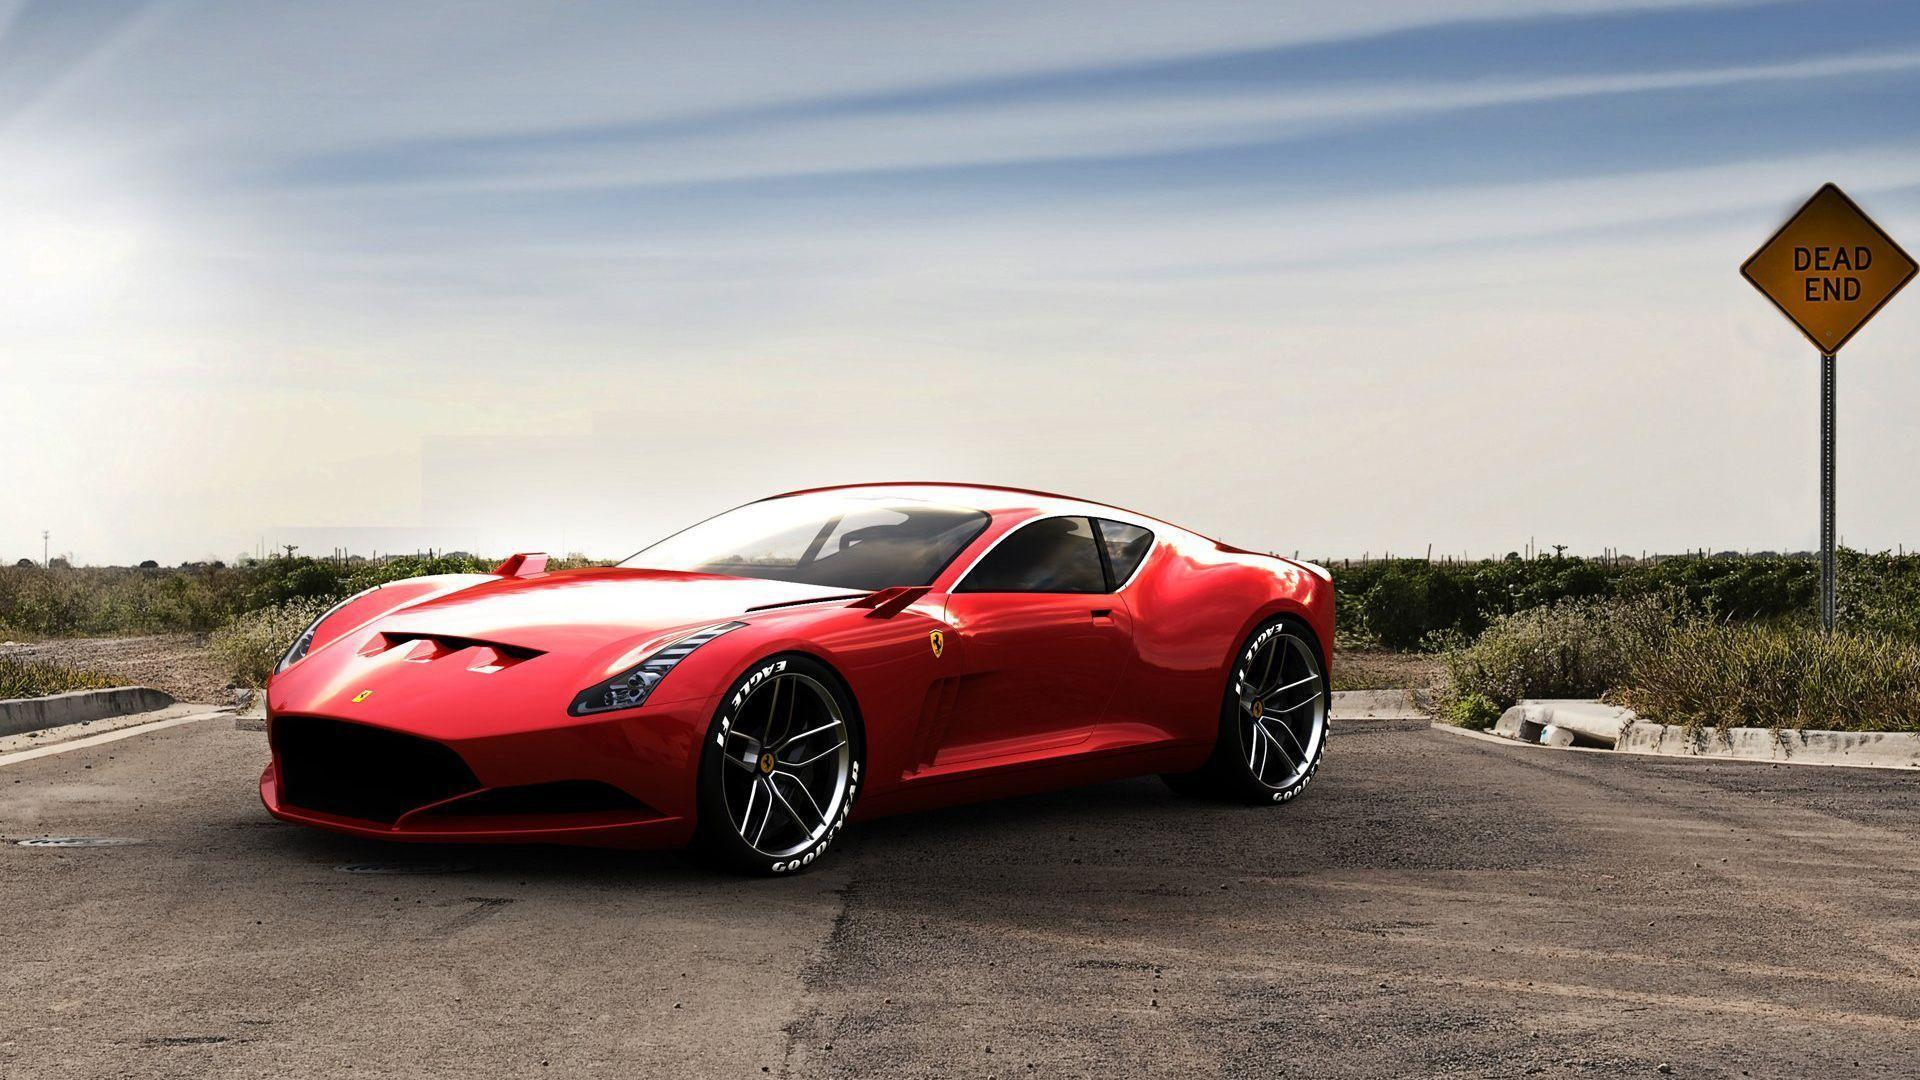 Sports Cars Wallpapers HD - Wallpaper Cave